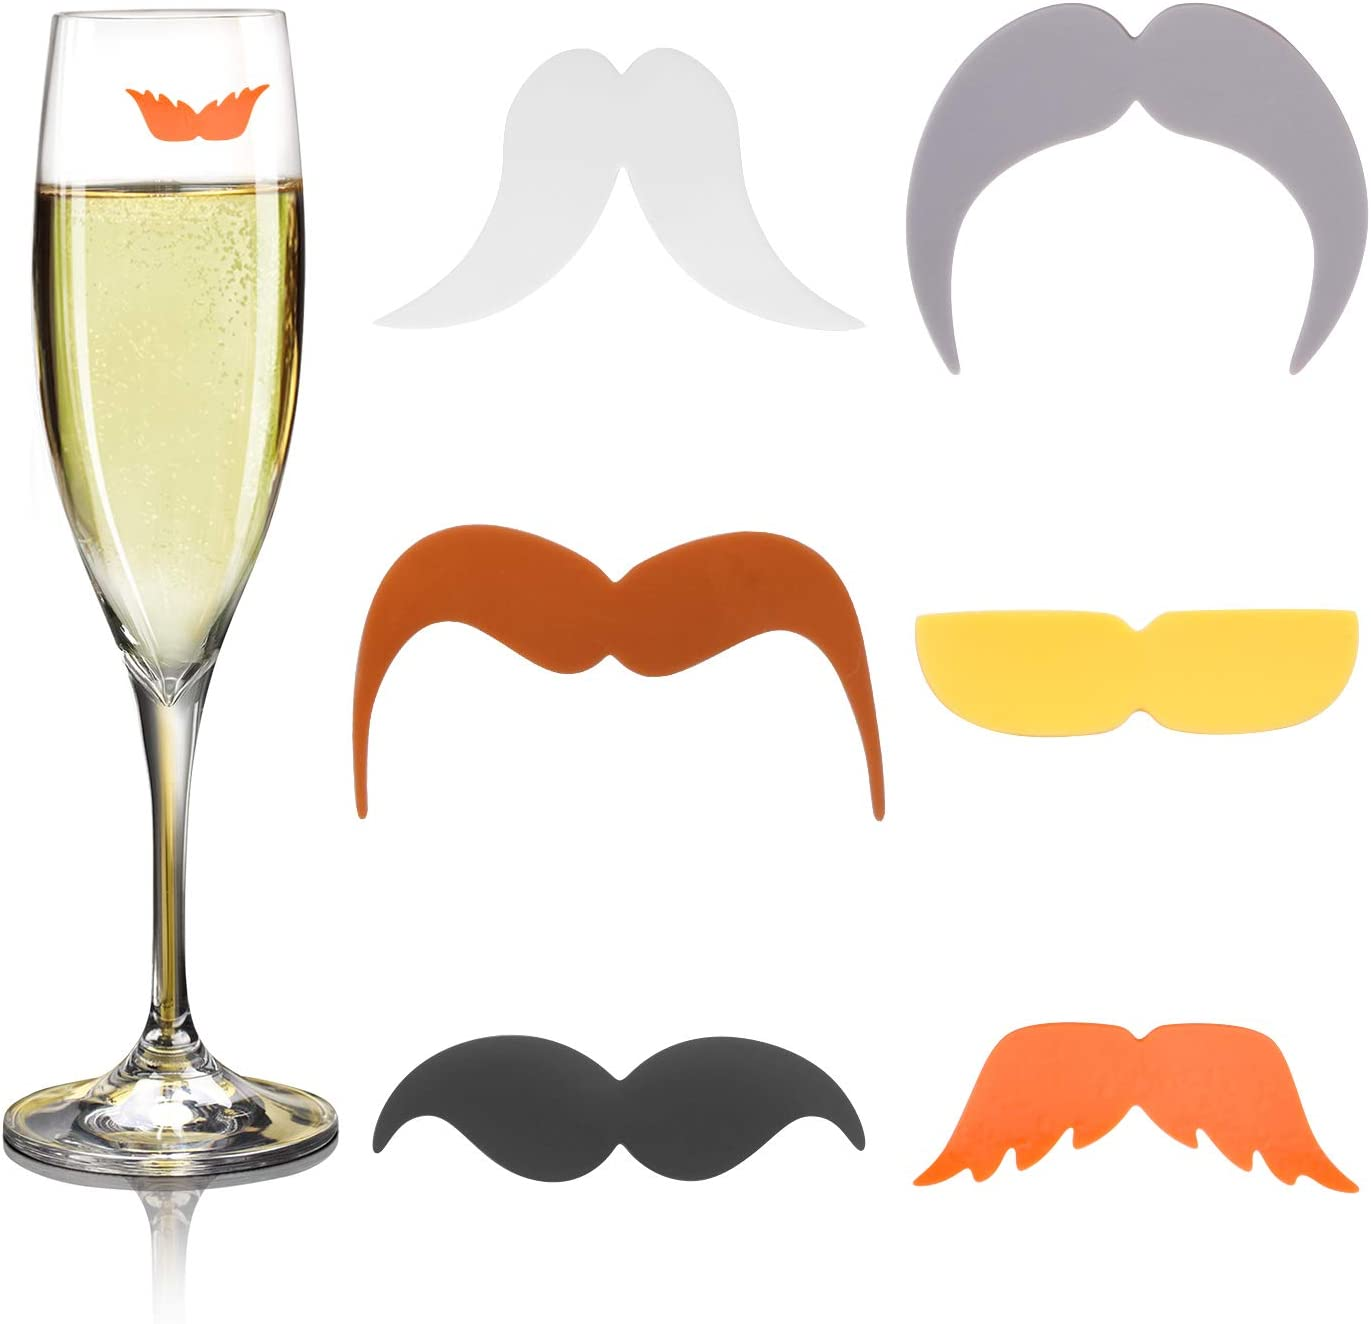 Wine Glass Markers, 6pcs Silicone Beard Style Drink Glass Markers Wine Glass Identifier Recognizer for Party Bar Table Decorations Home Use